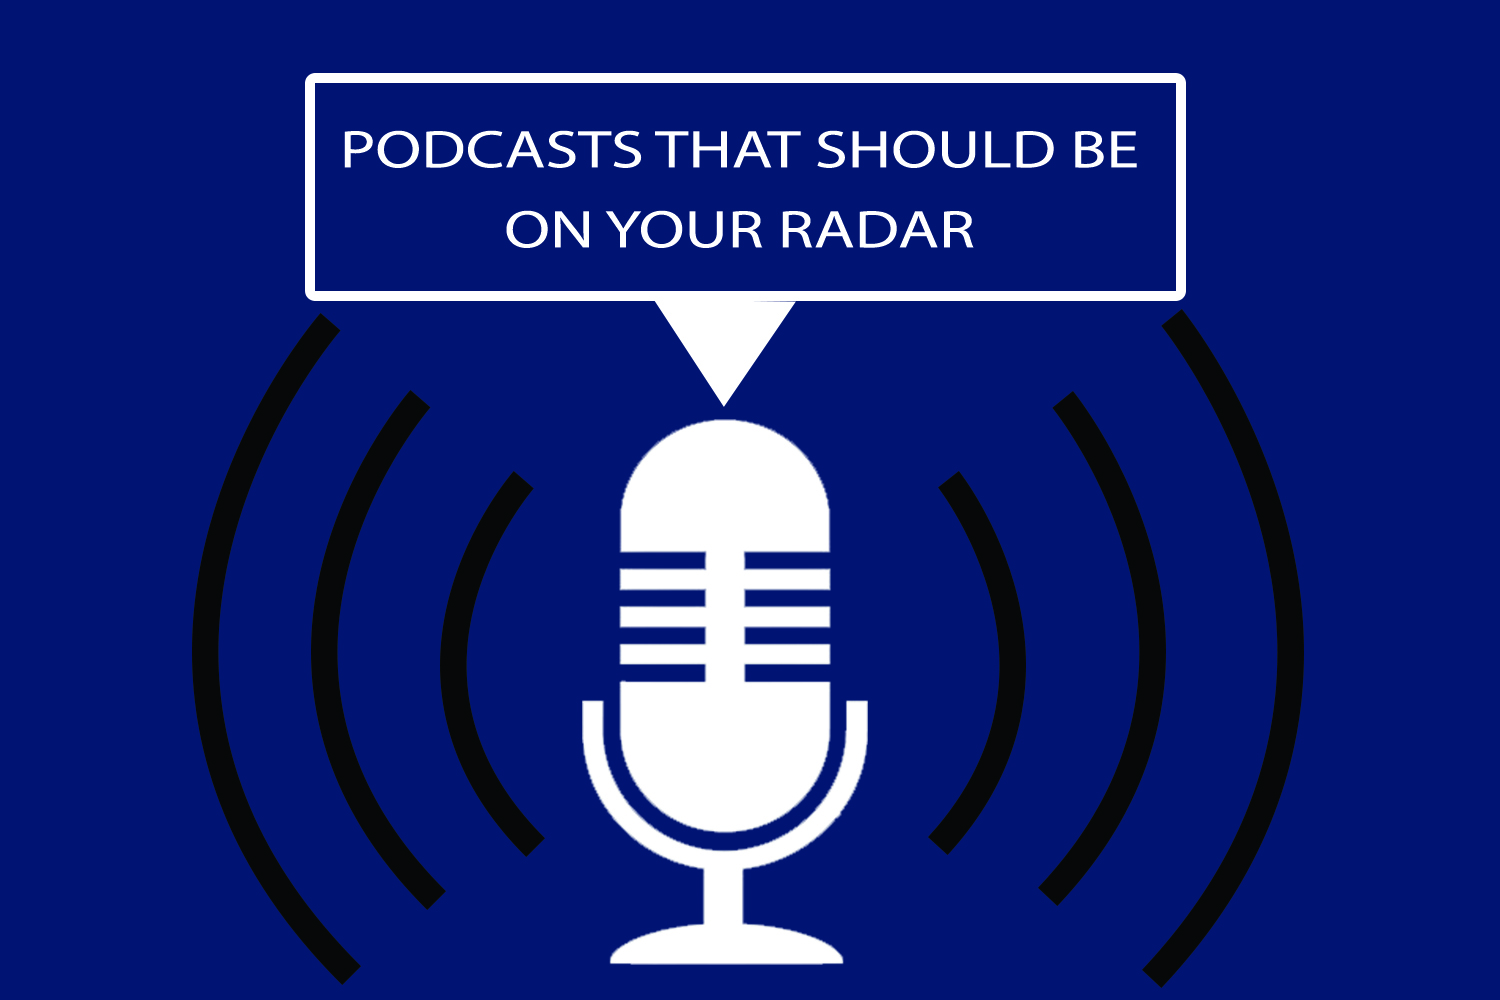 Whether your interests are science or fiction, math or music, politics or pop culture, podcasts are a perfect way to learn about the things that fascinate you, requiring only your smartphone and some earbuds.